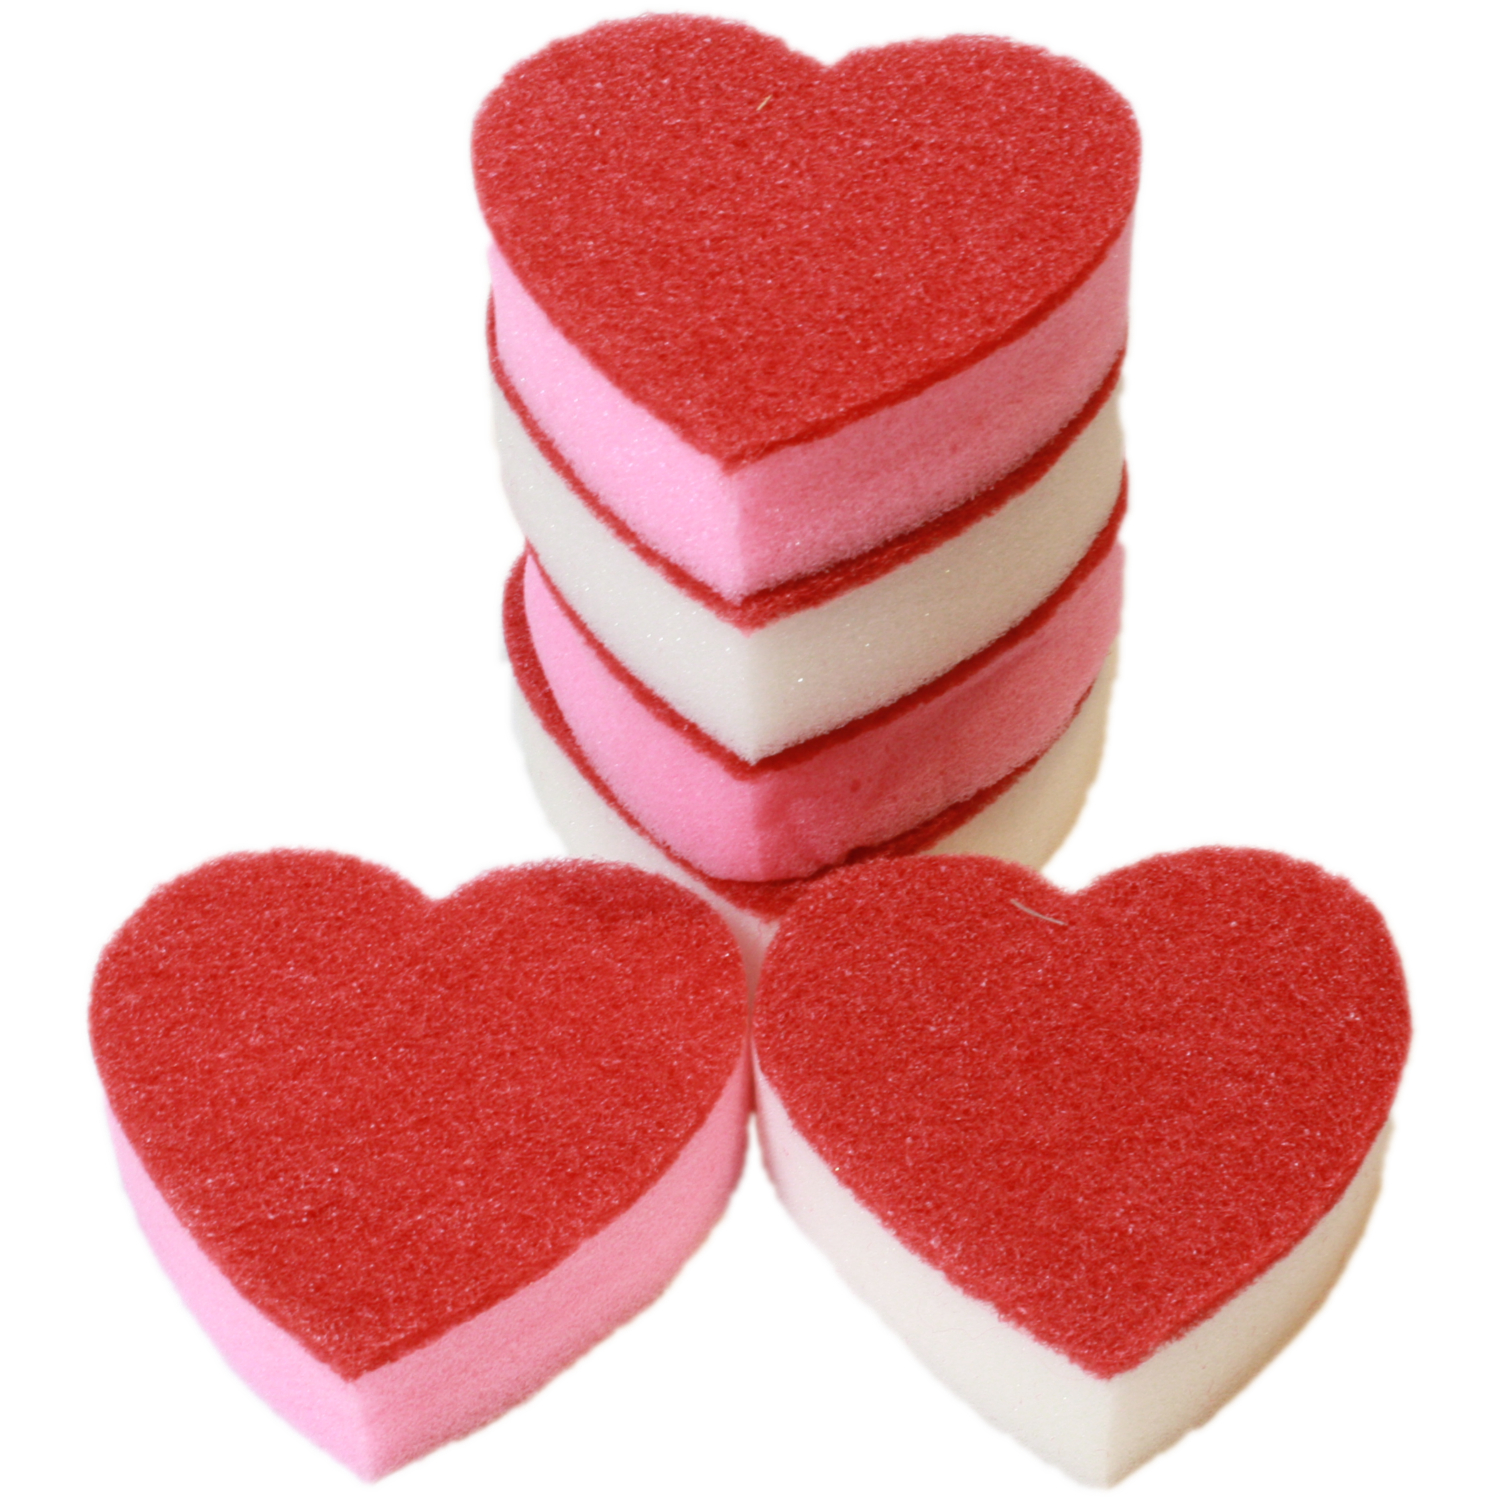 6x Heart Shaped Washing Up Sponges For The Love Of